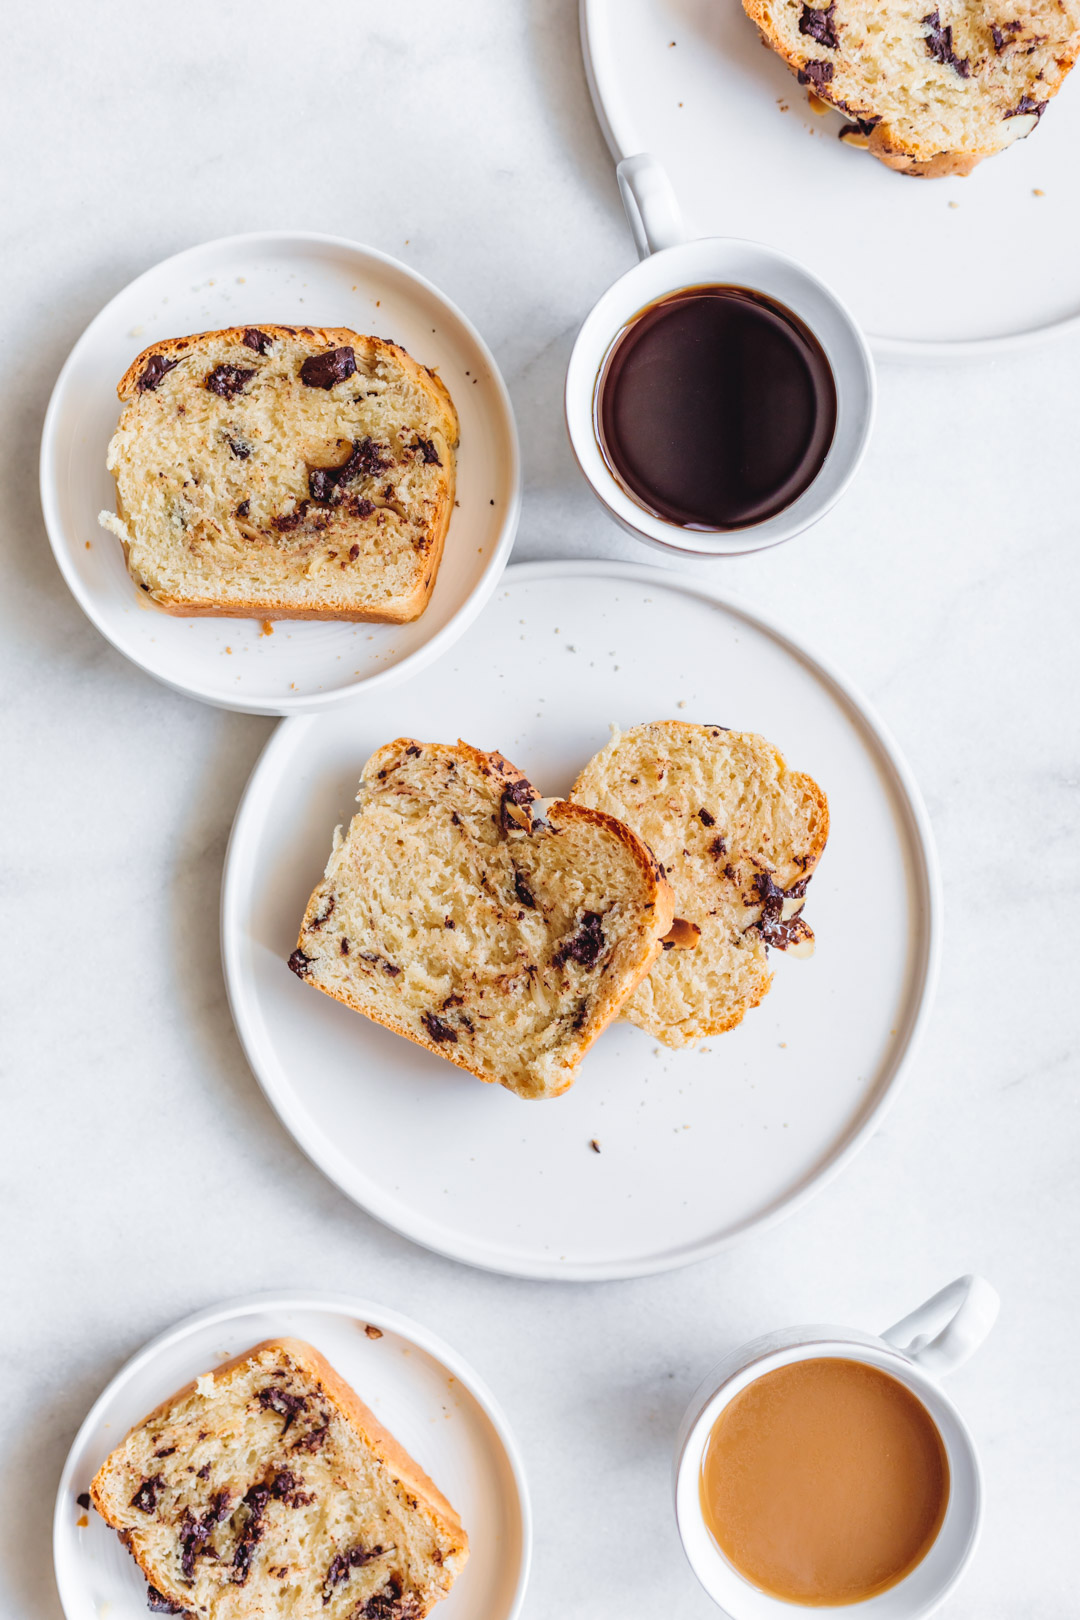 Chocolate Babka with Almond Flakes